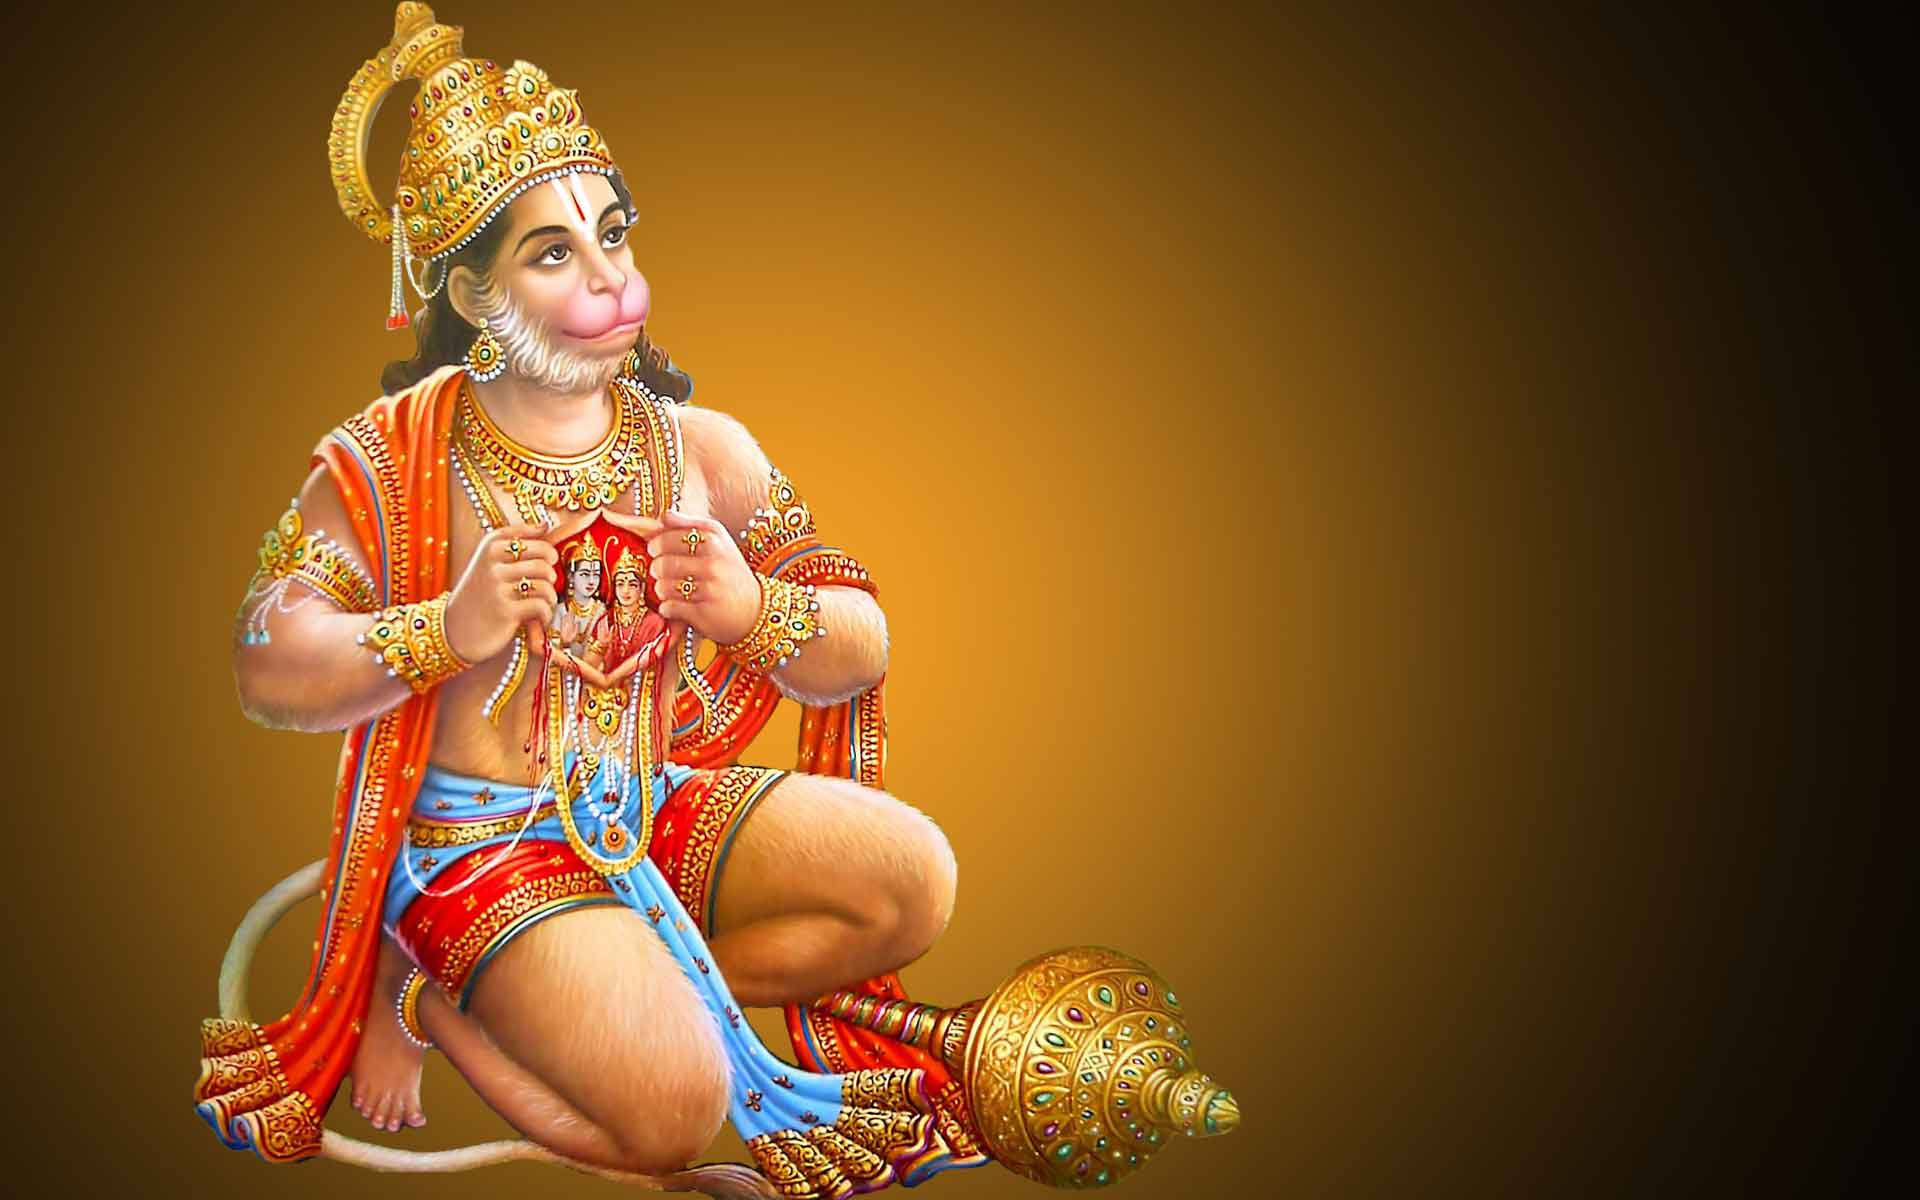 hanuman wallpapers download full hd full hd mobile